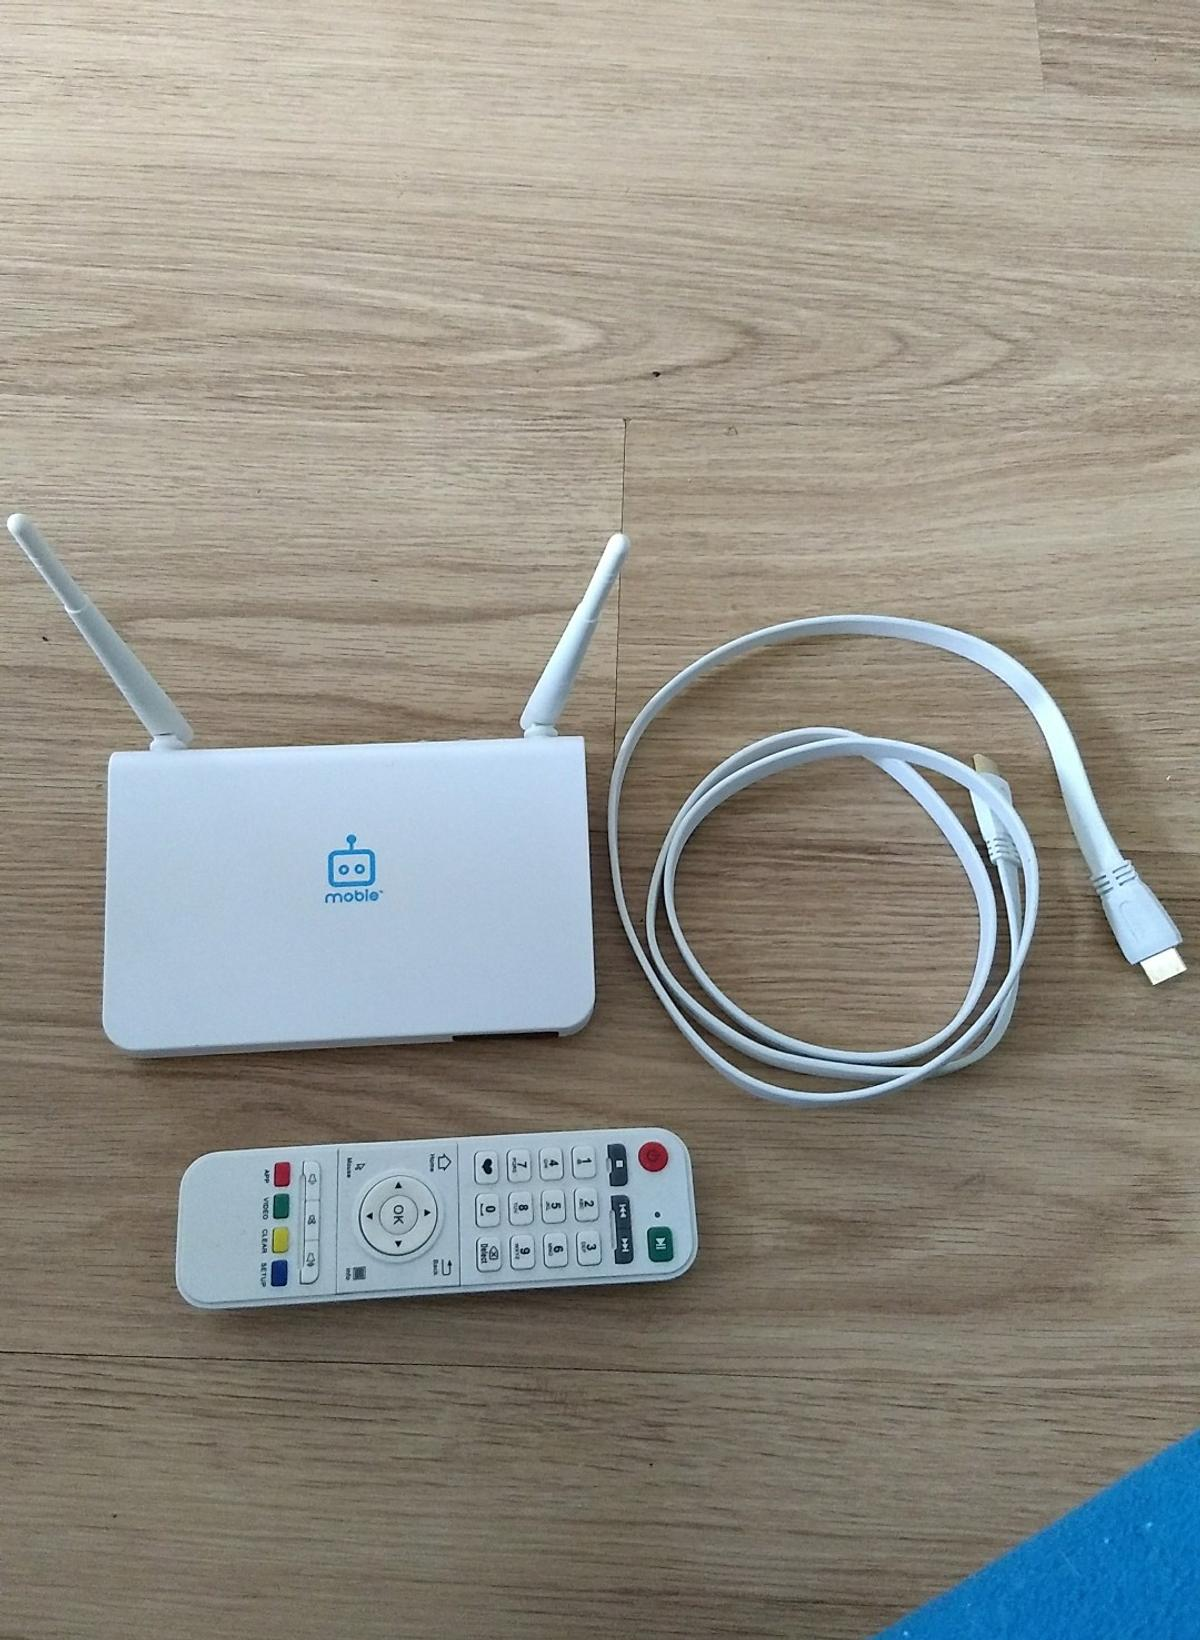 Mobie TV box- Android in W12 London for £12 00 for sale - Shpock